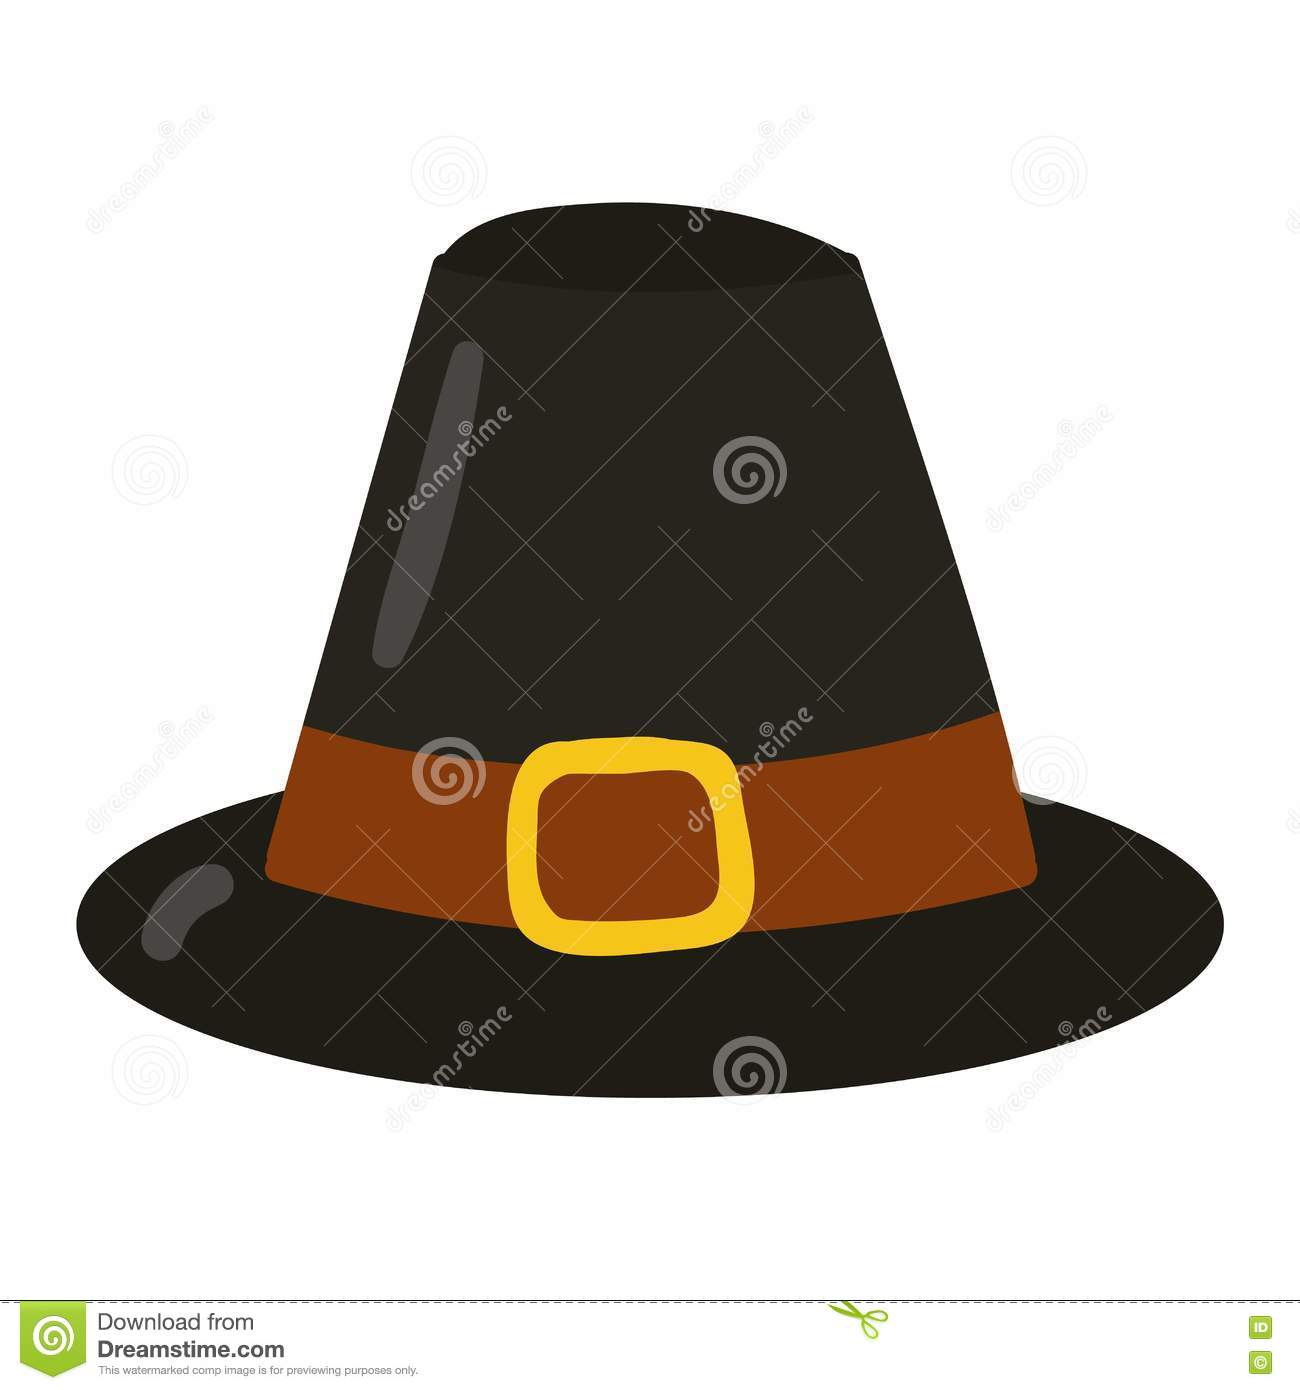 2c83c5b6d18 Old Farm Hat Vector Illustration. Stock Vector - Illustration of ...